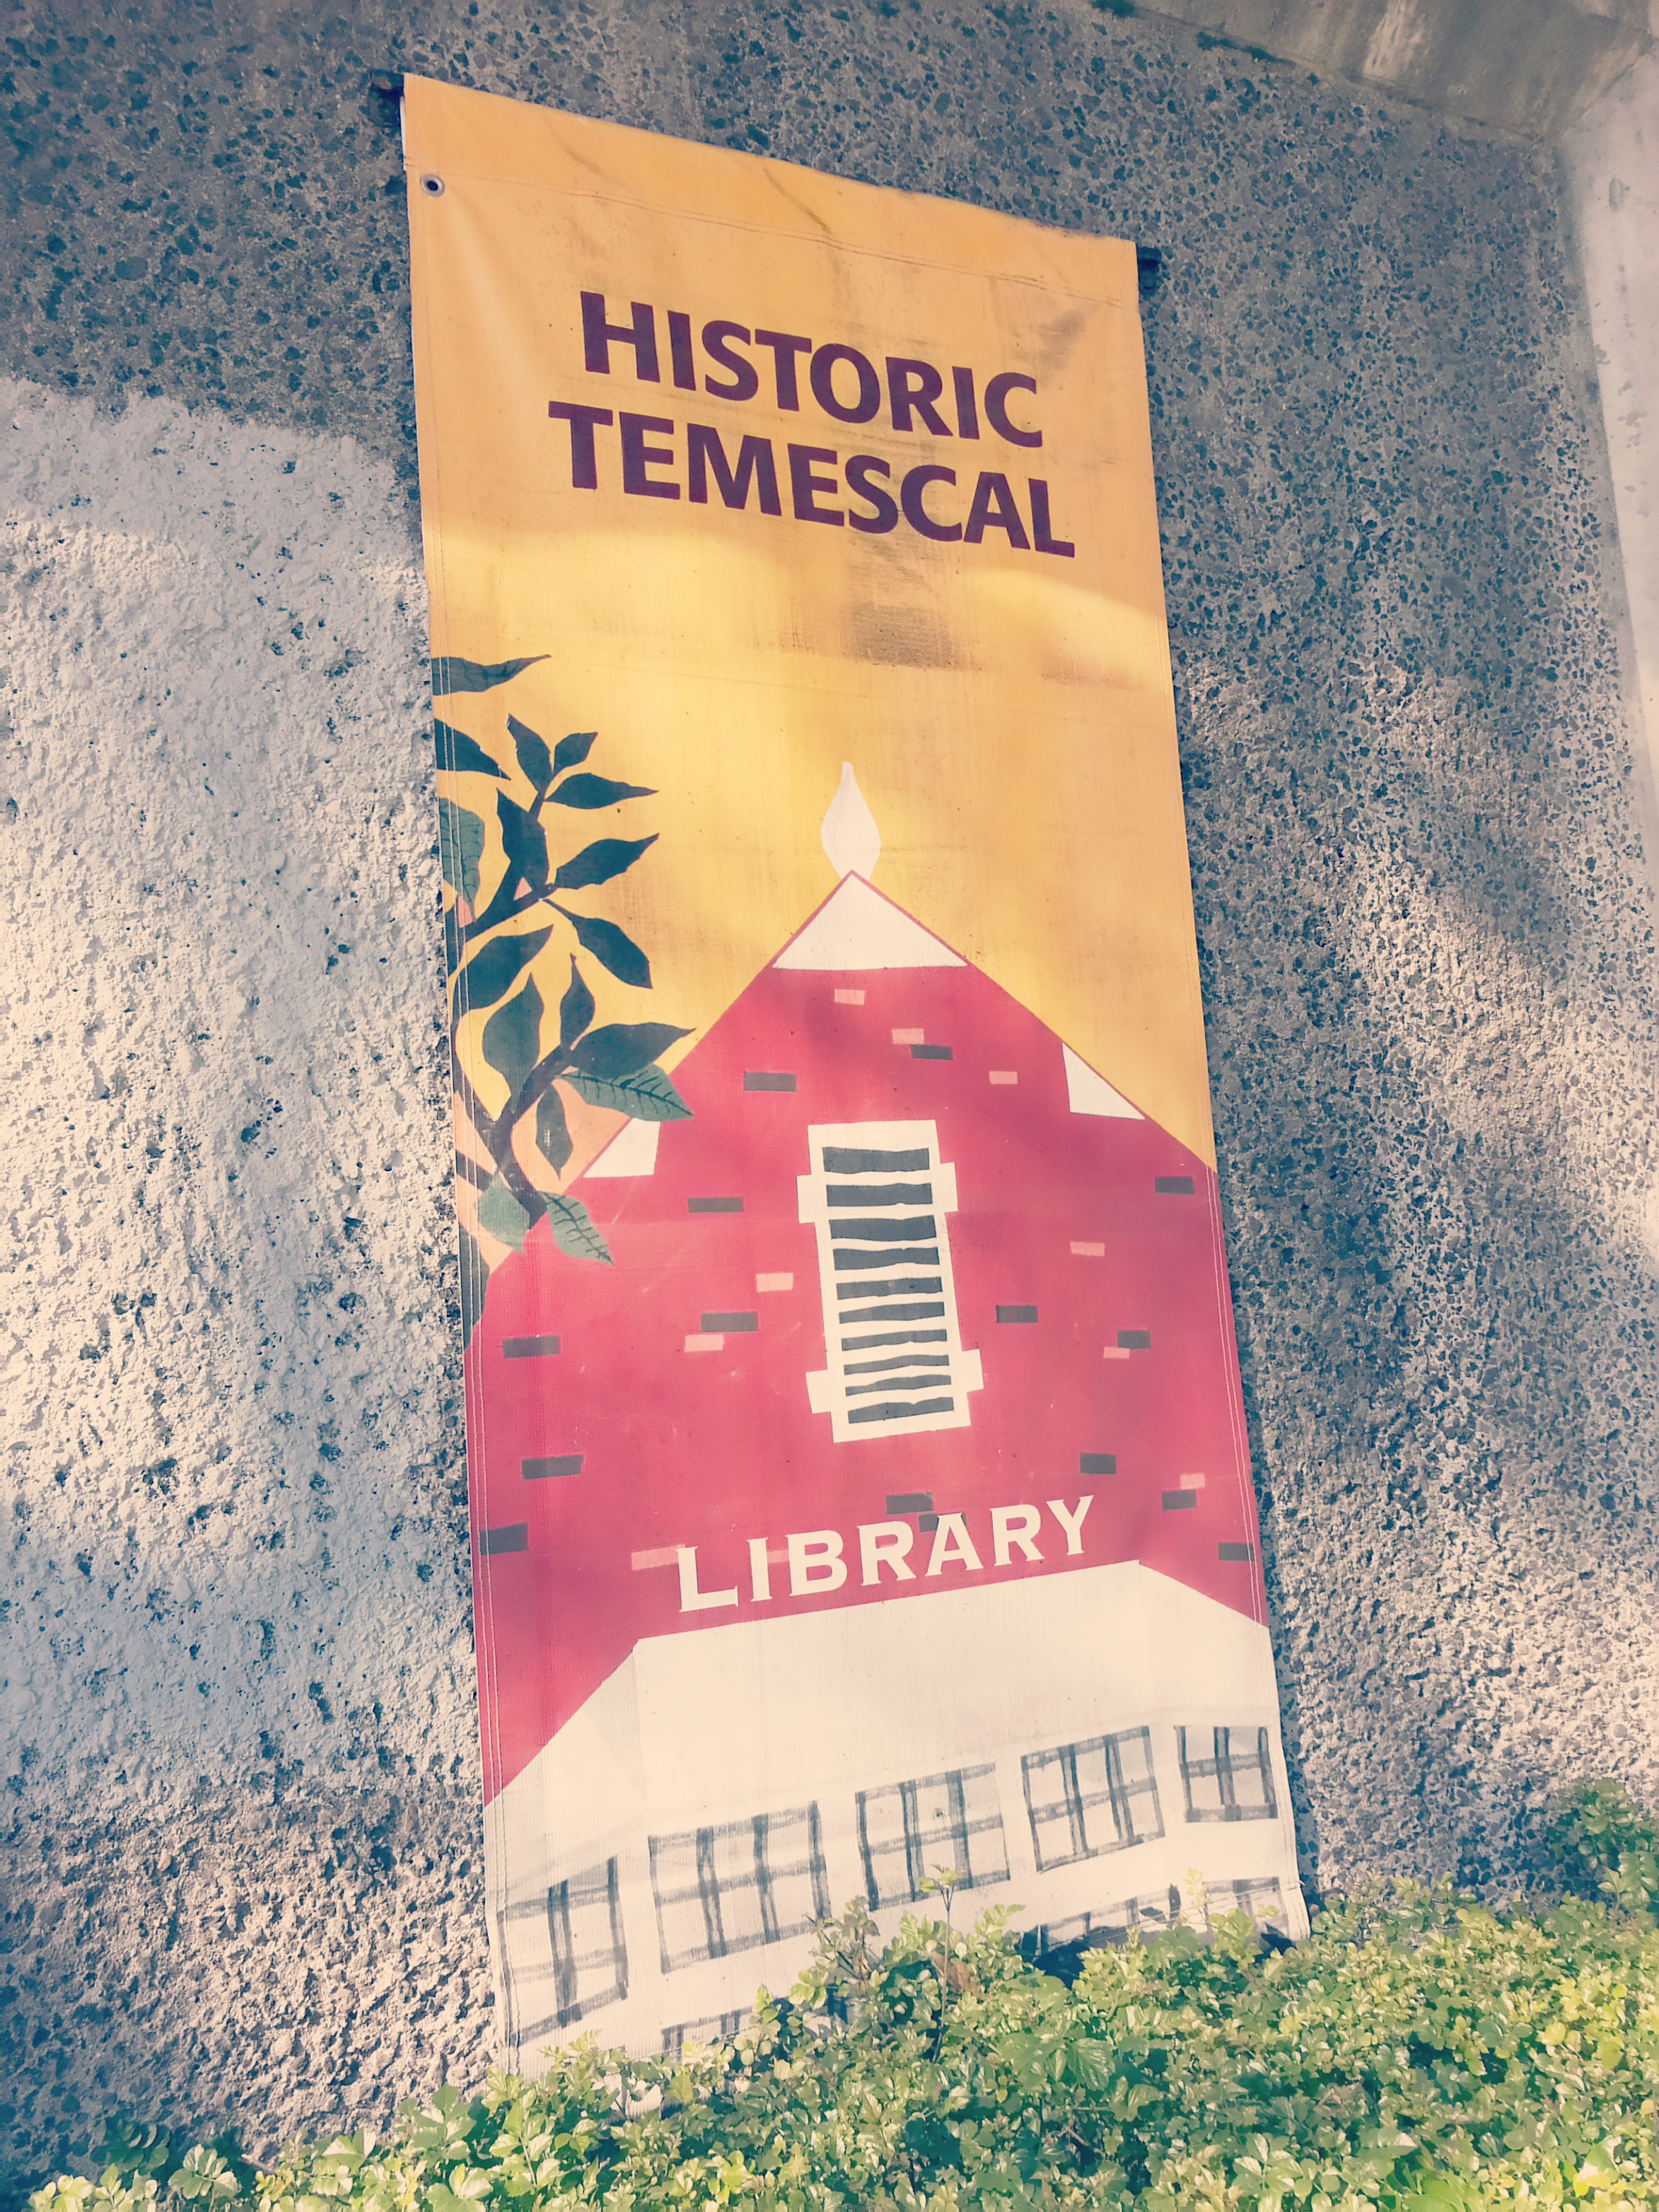 Historic Temescal Library, Oakland, California